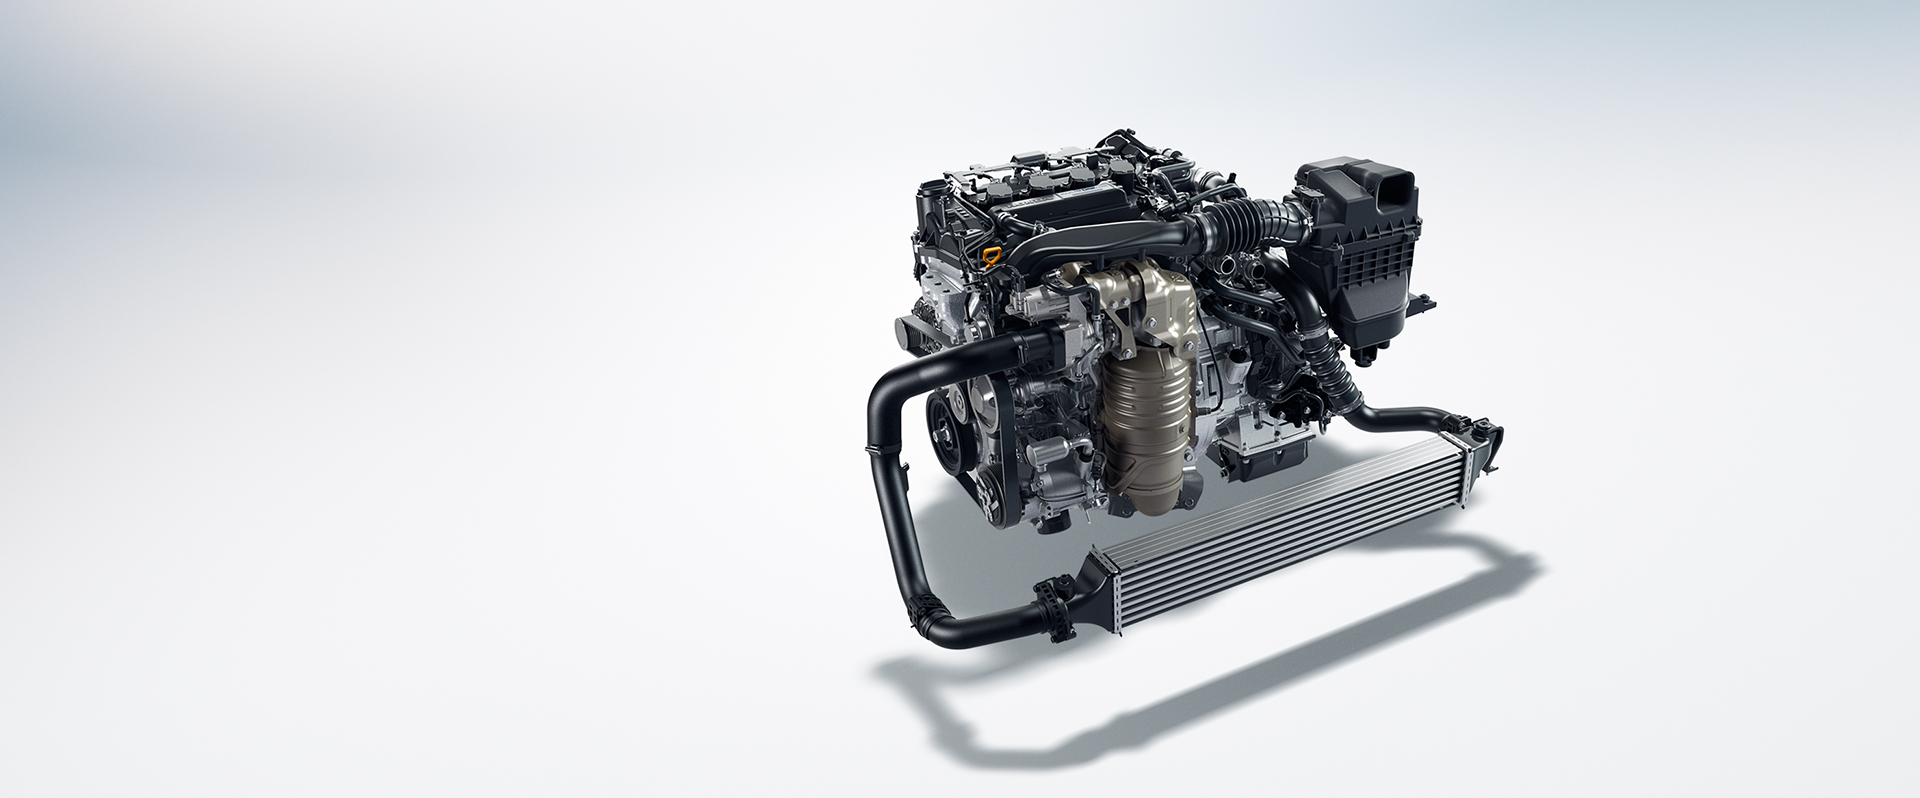 2016-honda-civic-turbocharged-engine